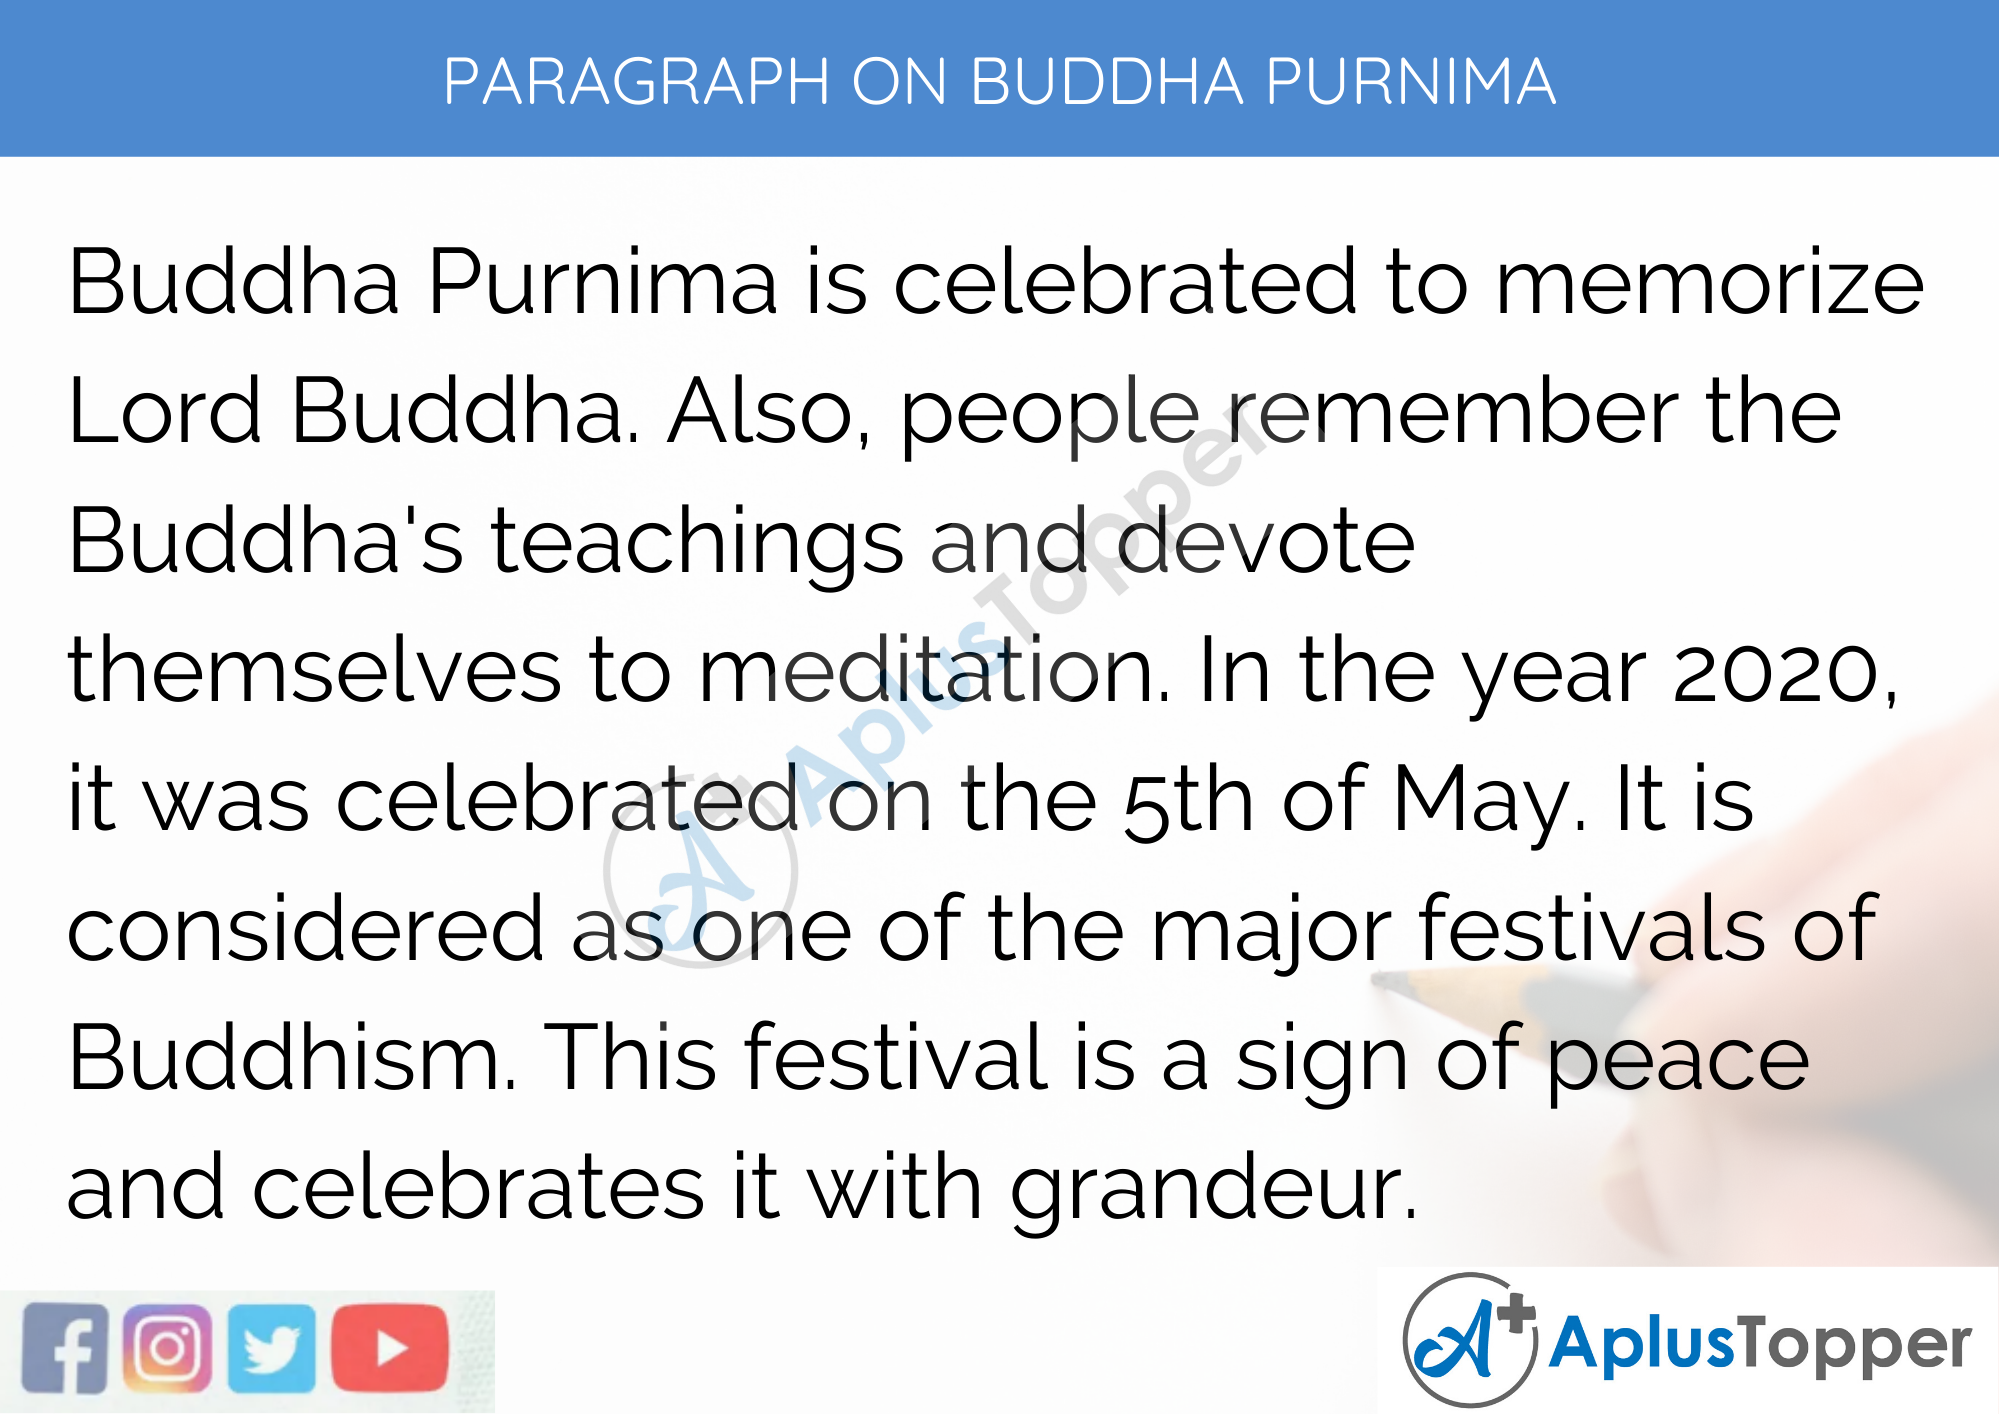 Paragraph On Buddha Purnima - 250 to 300 Words for Classes 9, 10, 11, 12 And Competitive Exam Students